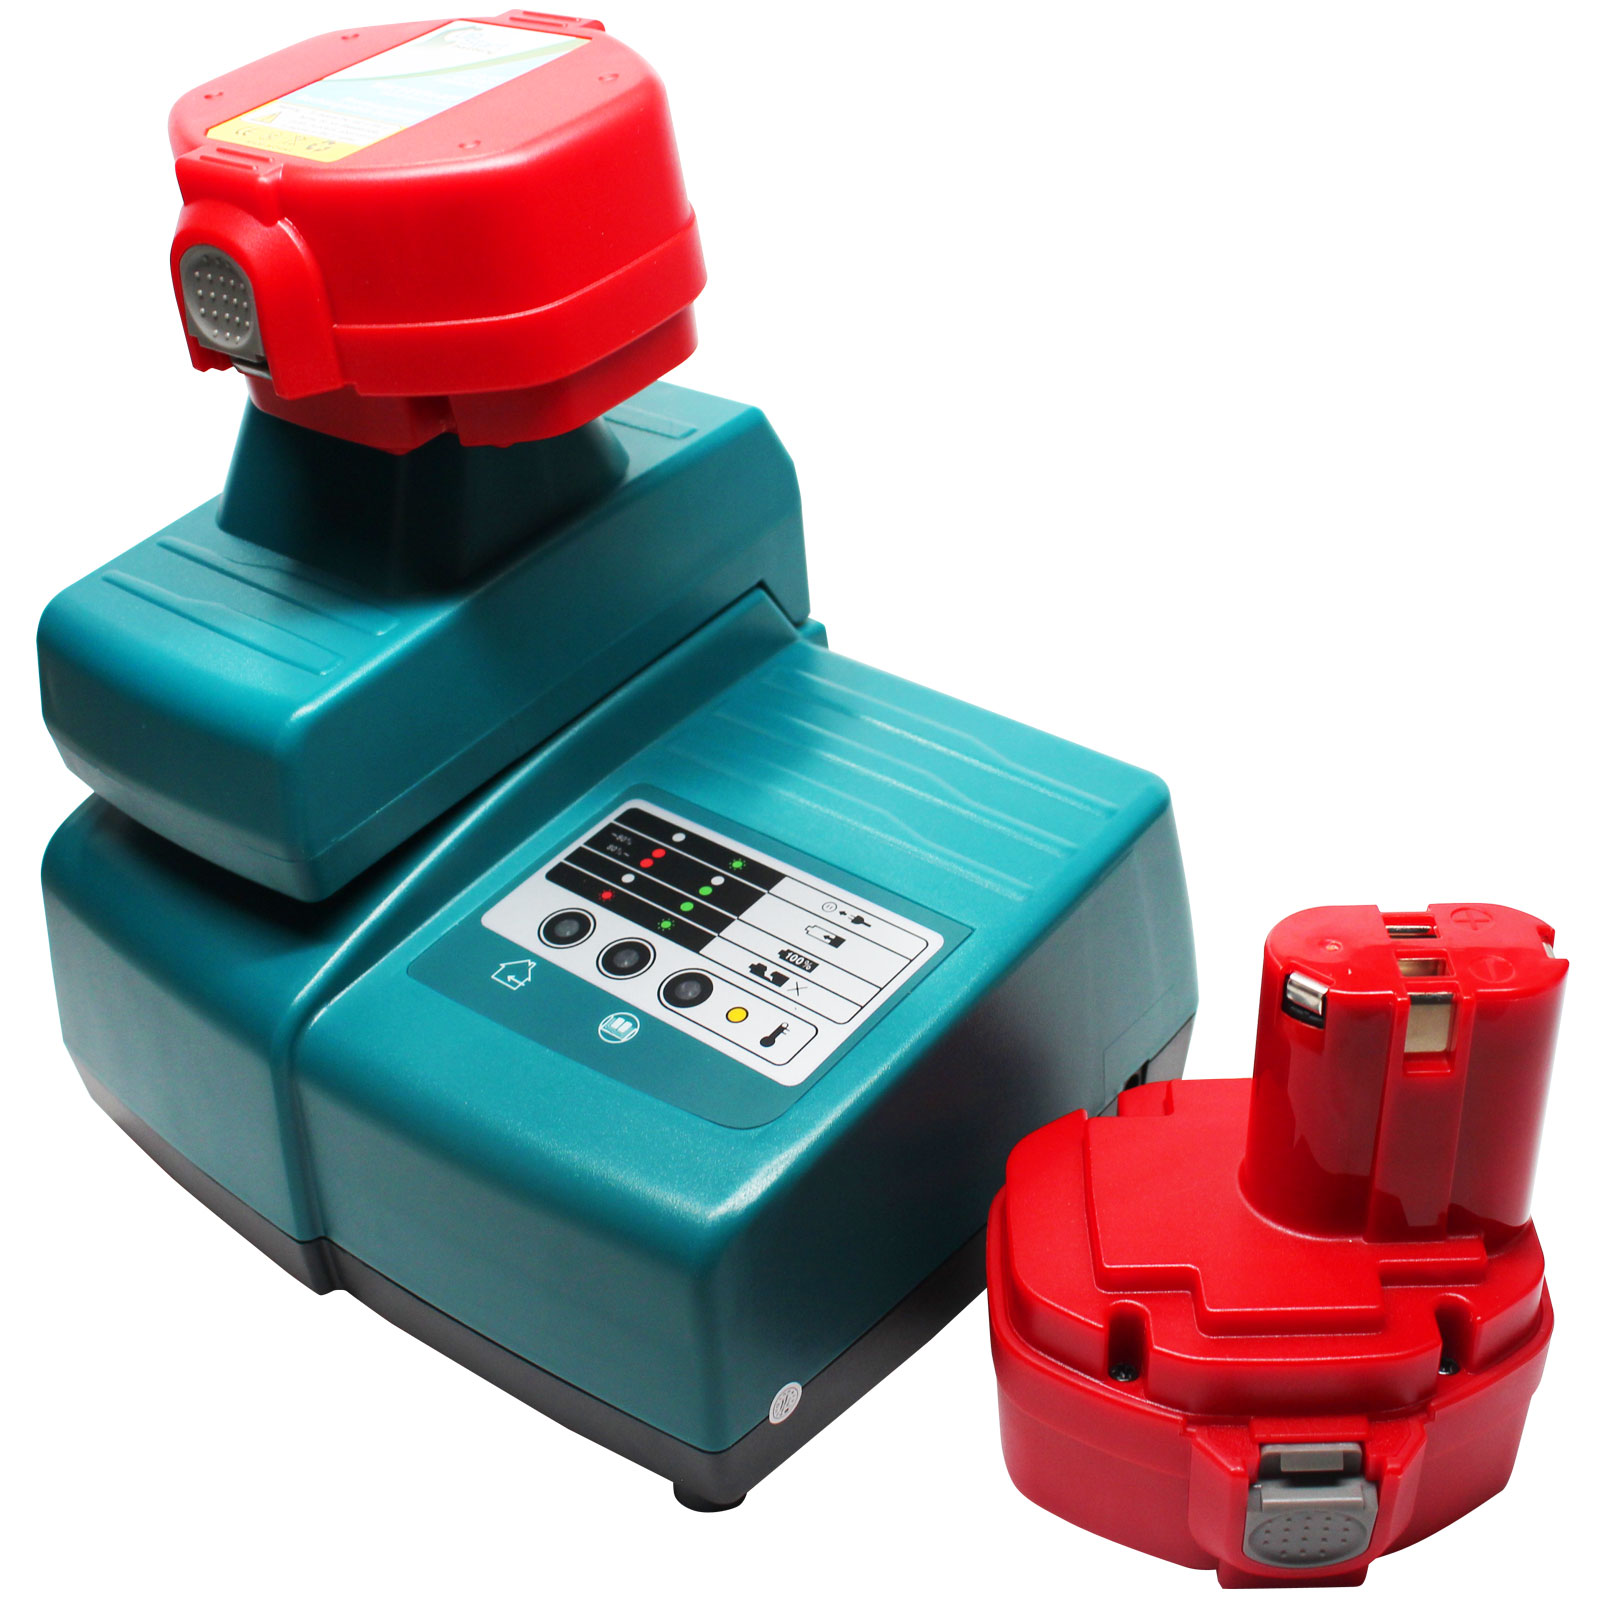 2 Pack Makita 6337d Battery Universal Charger For